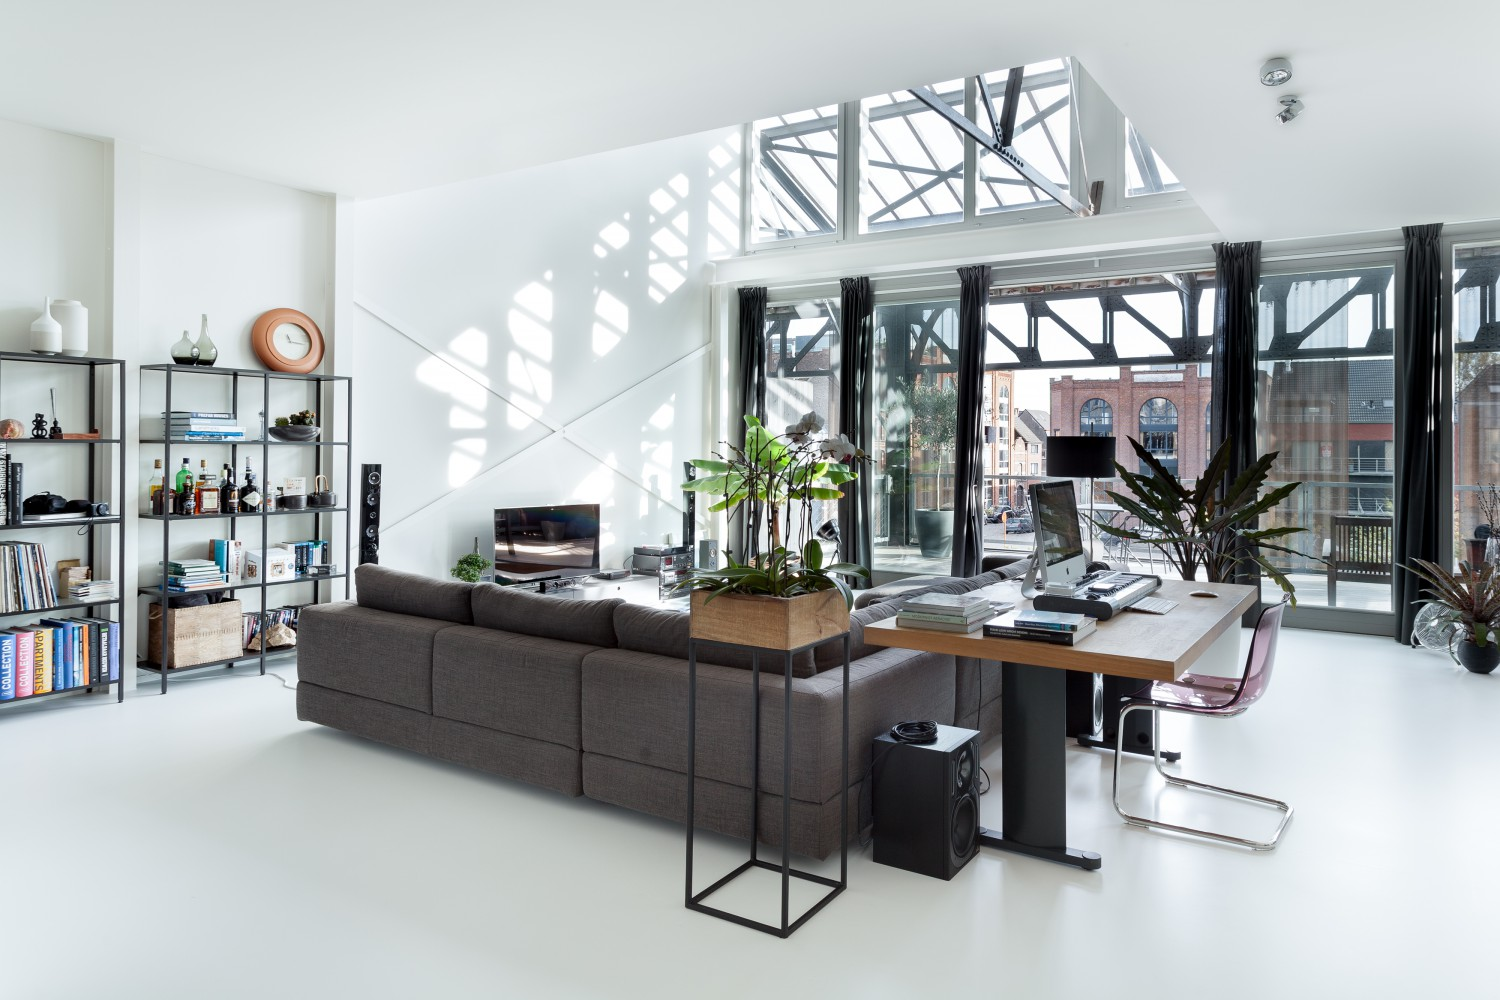 PLACES_AND_SPACES_INTERIEURFOTOGRAFIE_LOFT_GHENT_006